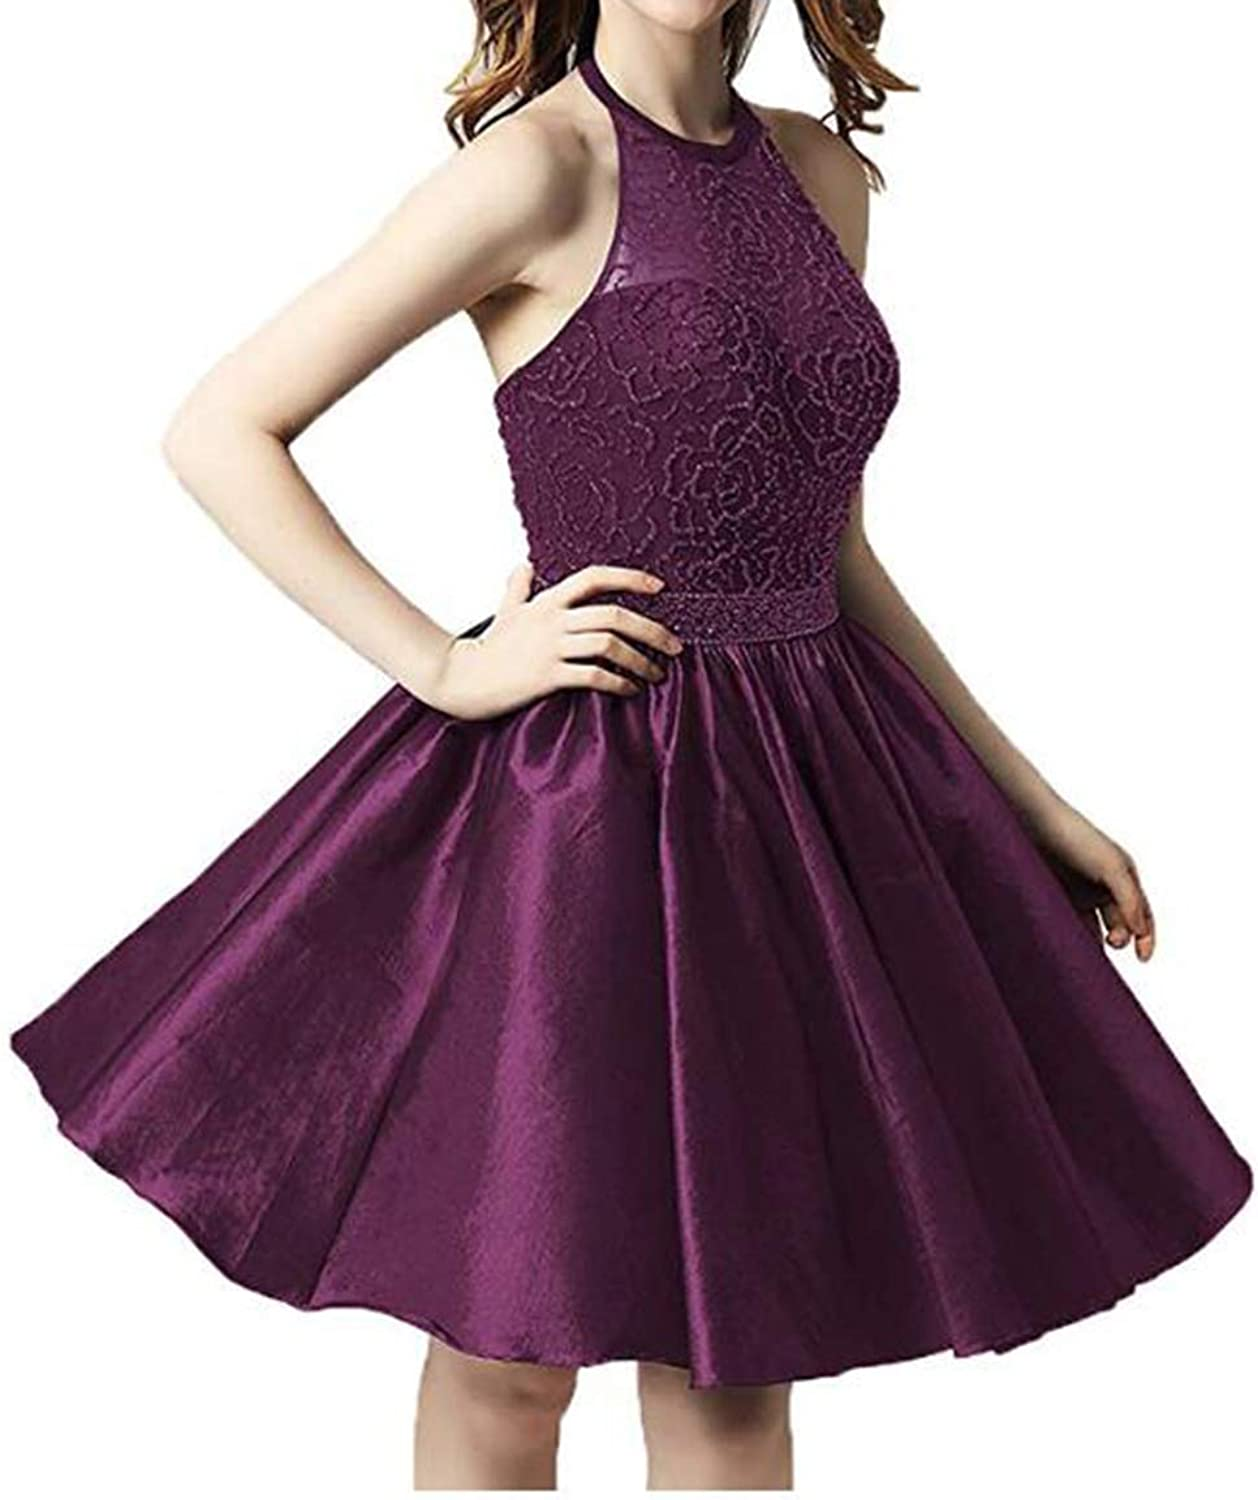 Alilith.Z Sexy Halter Beading Homecoming Dresses 2018 Short Prom Dresses Party Gowns for Women